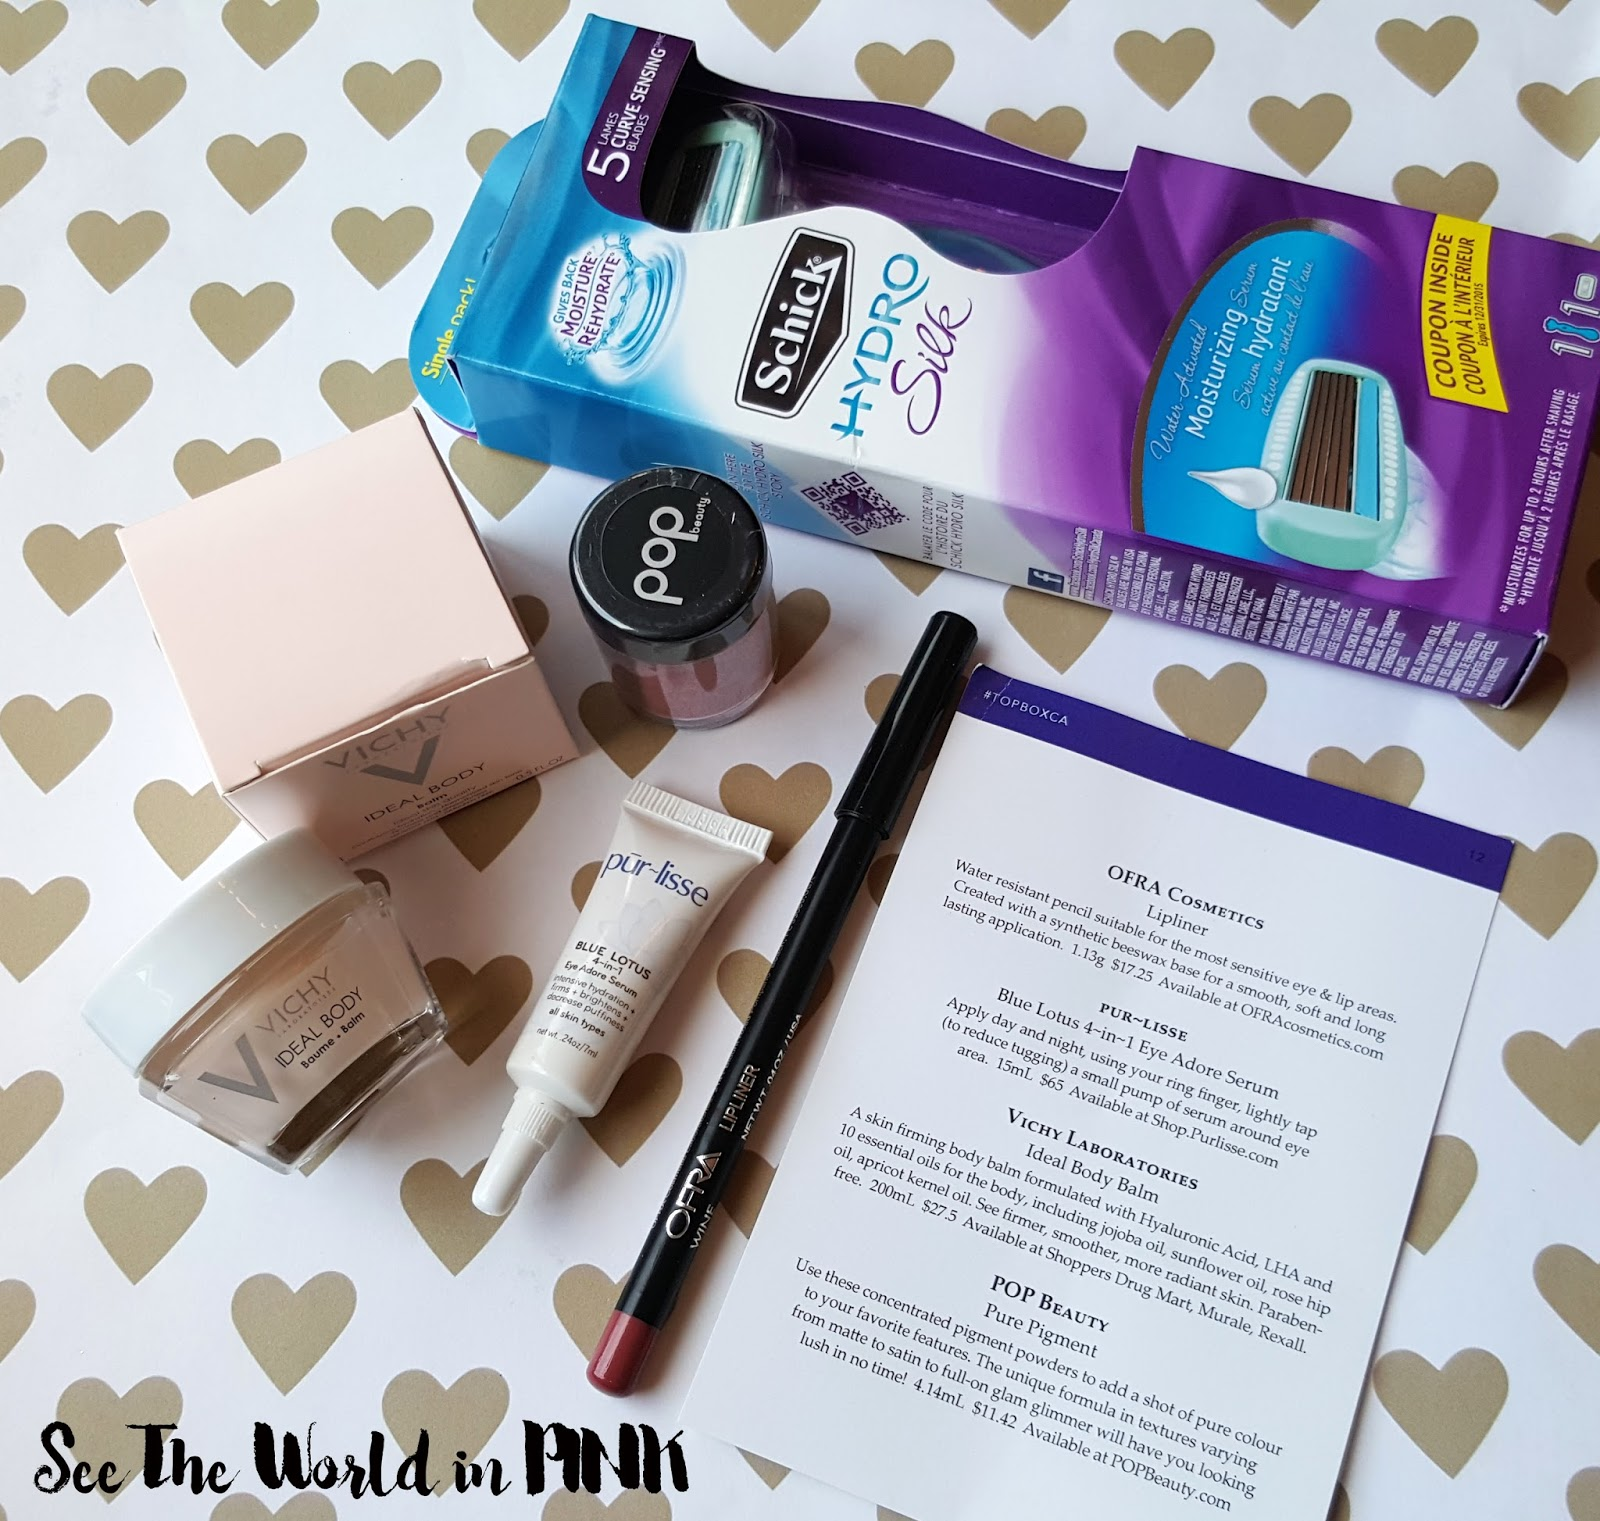 April 2016 Topbox - Unboxing and Review